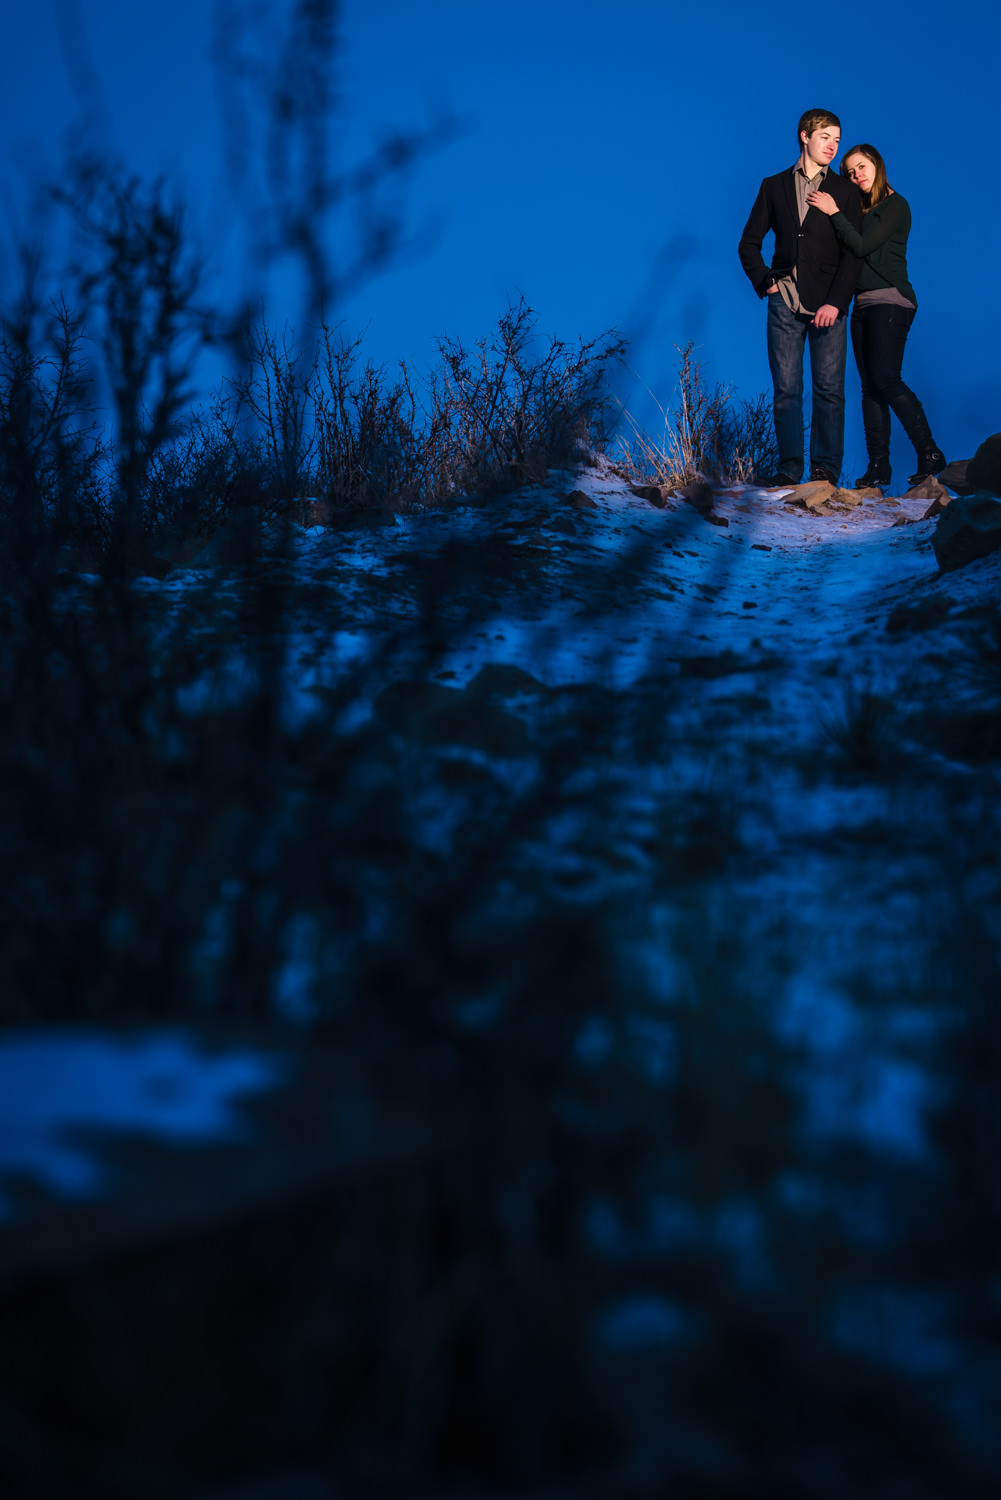 Winter snowy engagement pictures taken at the Horsetooth Reservoir in Fort Collins Colorado. Photographed by JMGant Photography.